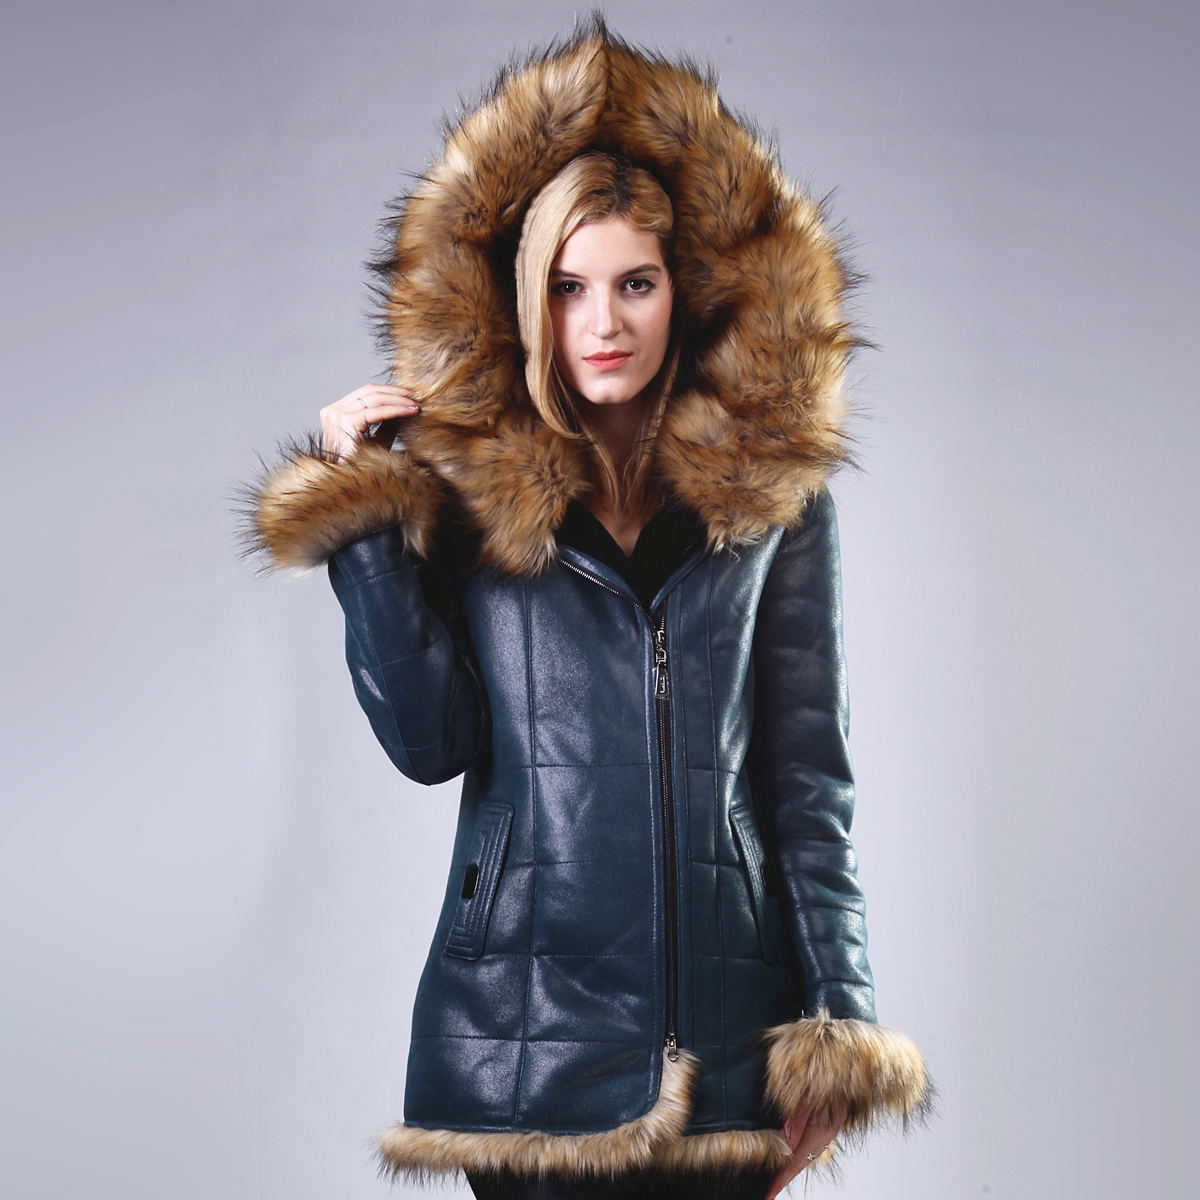 Women Coat Artificial sheepskin Raccoon Dog Fur Faux Leather Hooded collar Lady suit coat Direct supply from factory wholesale